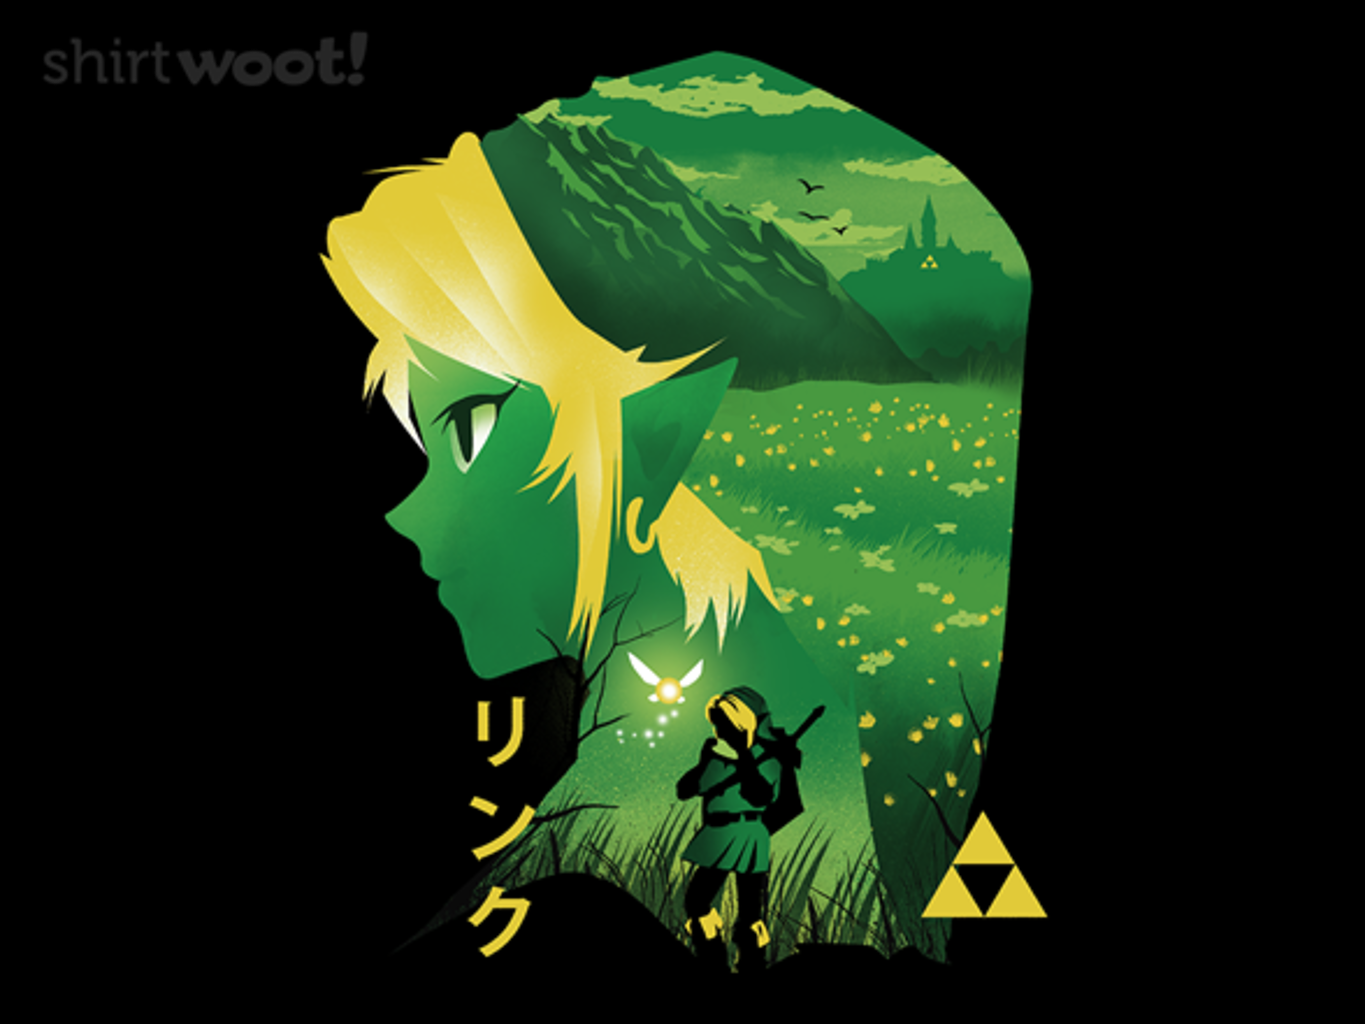 Woot!: Hyrule Hero